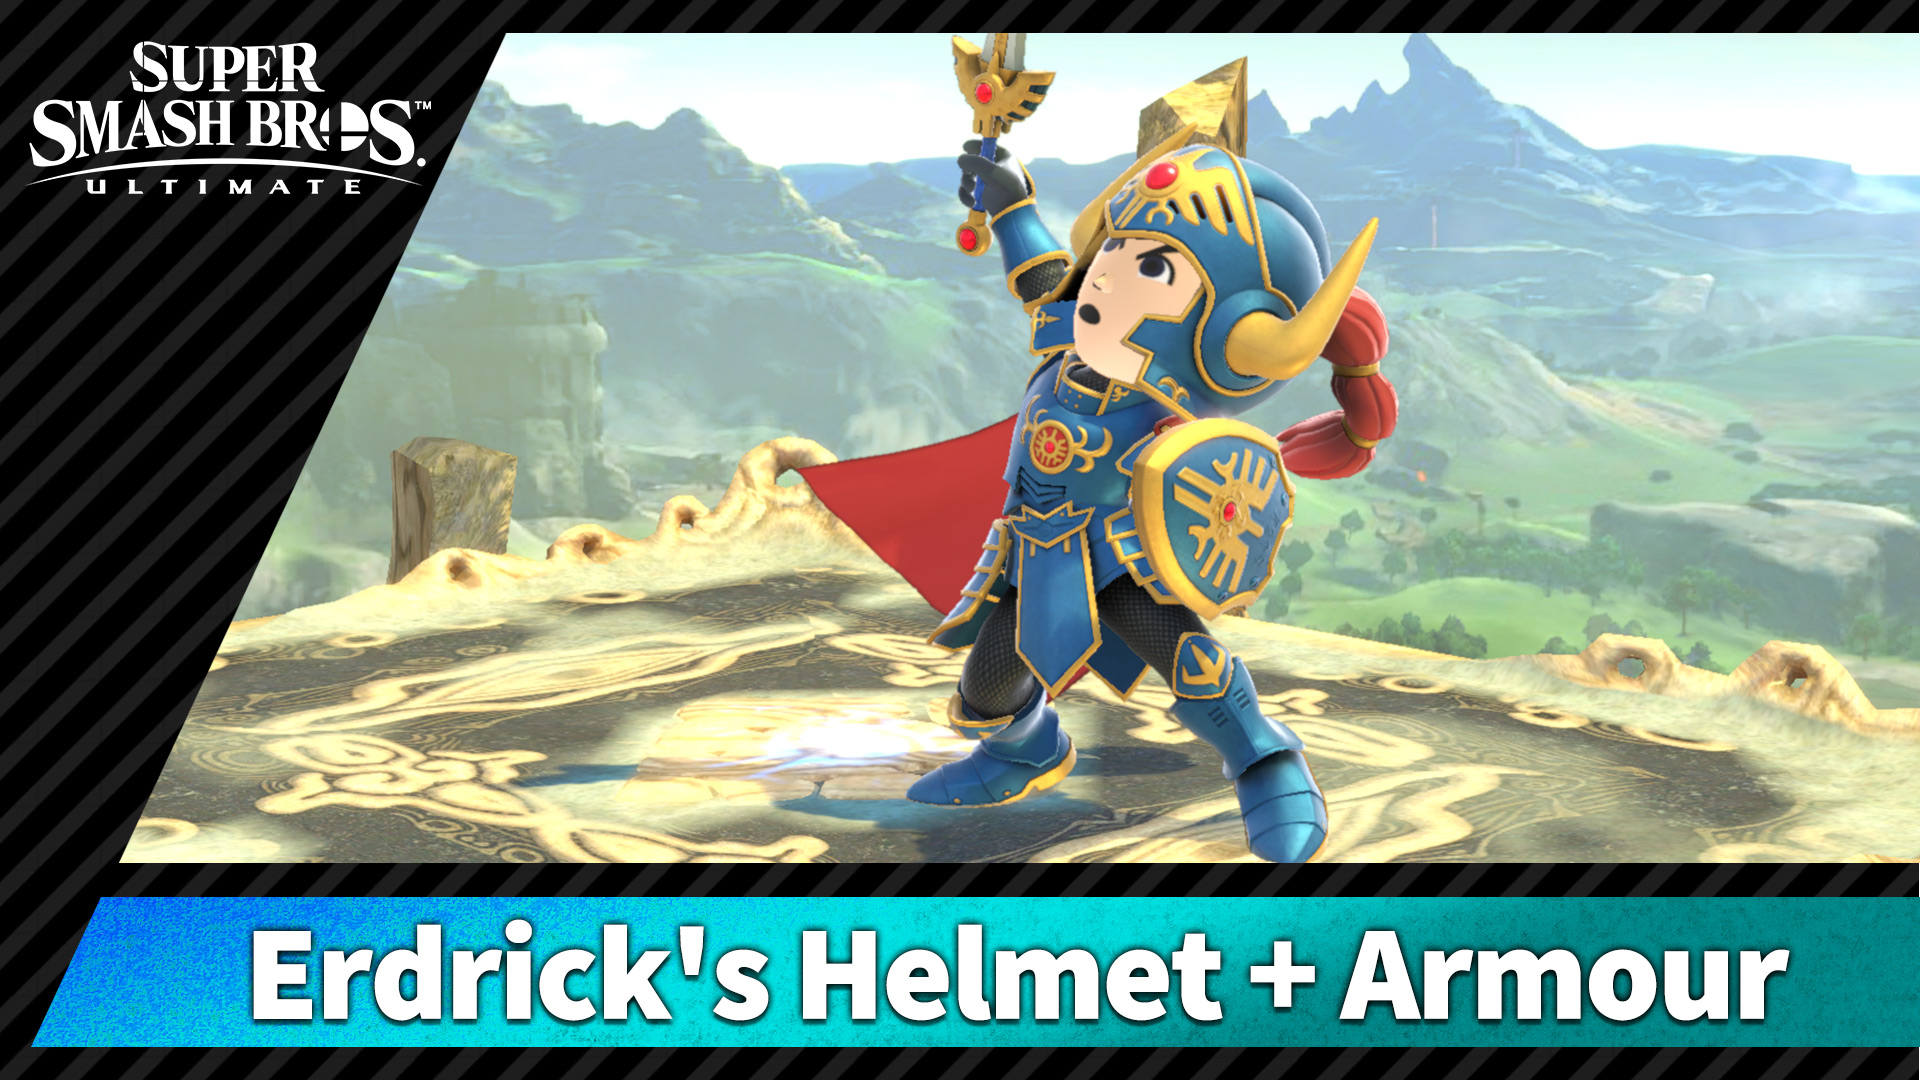 Erdrick S Helmet Armour Nintendo Switch Nintendo Note that for the purposes of the stats shown, i am using the +3 version if applicable, assuming. helmet armour nintendo switch nintendo